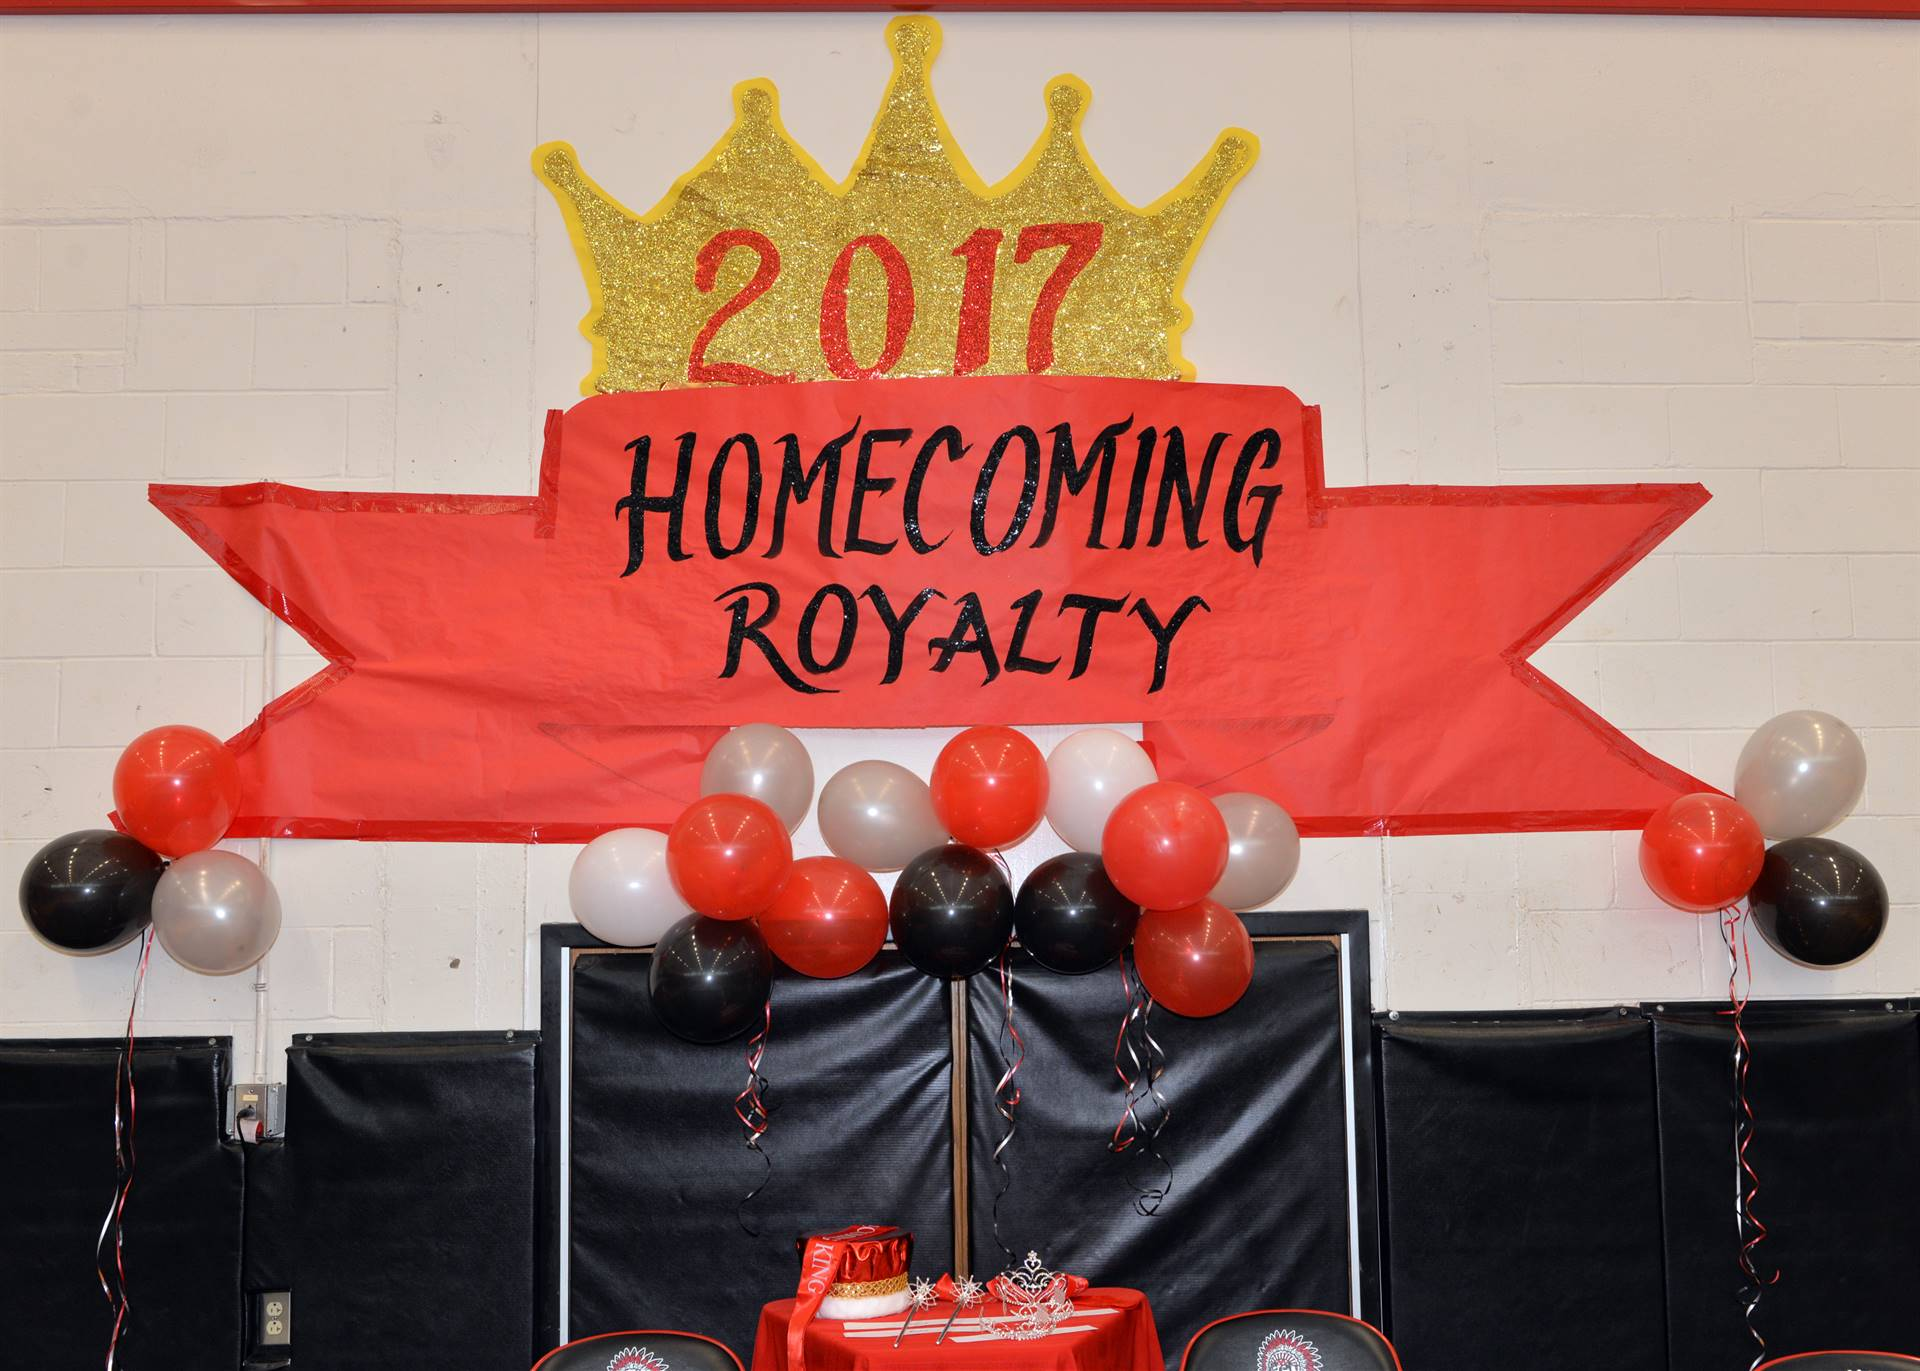 Homecoming stage